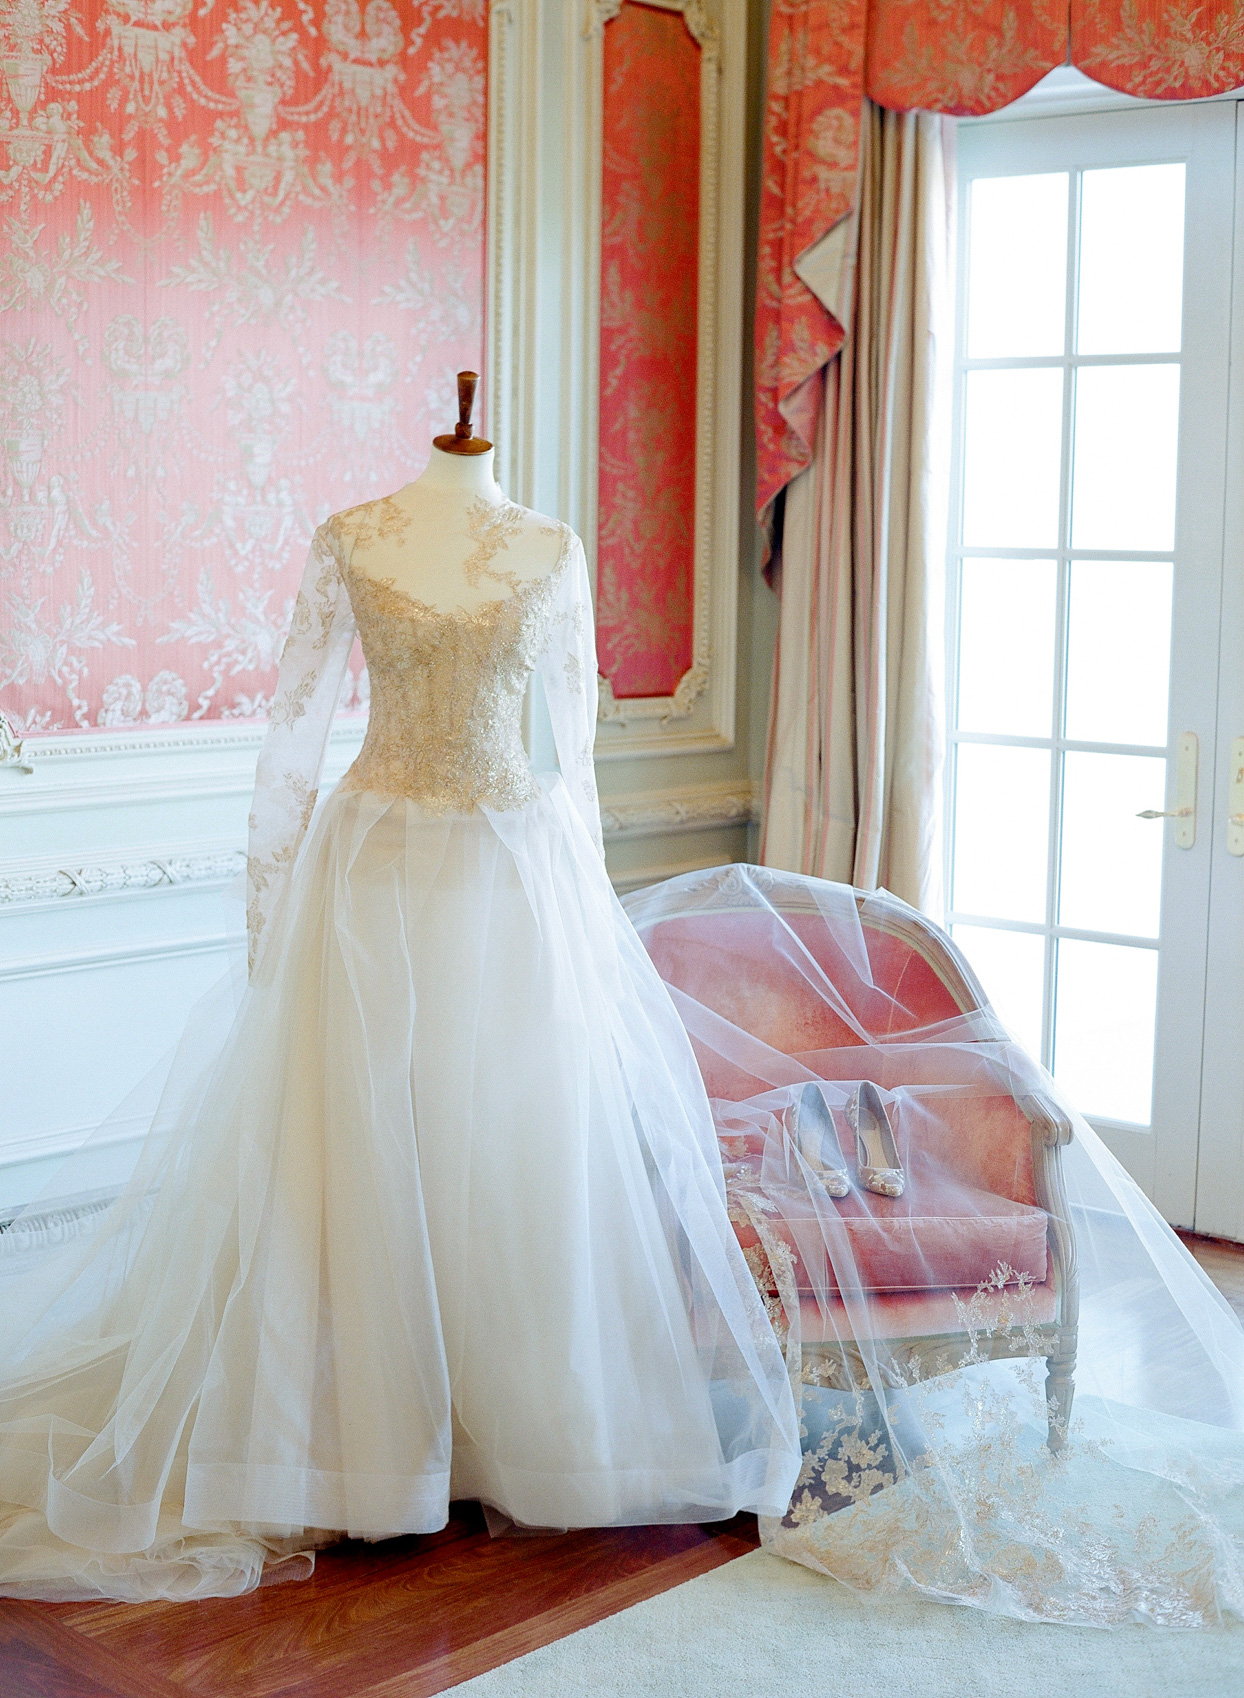 wedding dress on mannequin with gold shoes